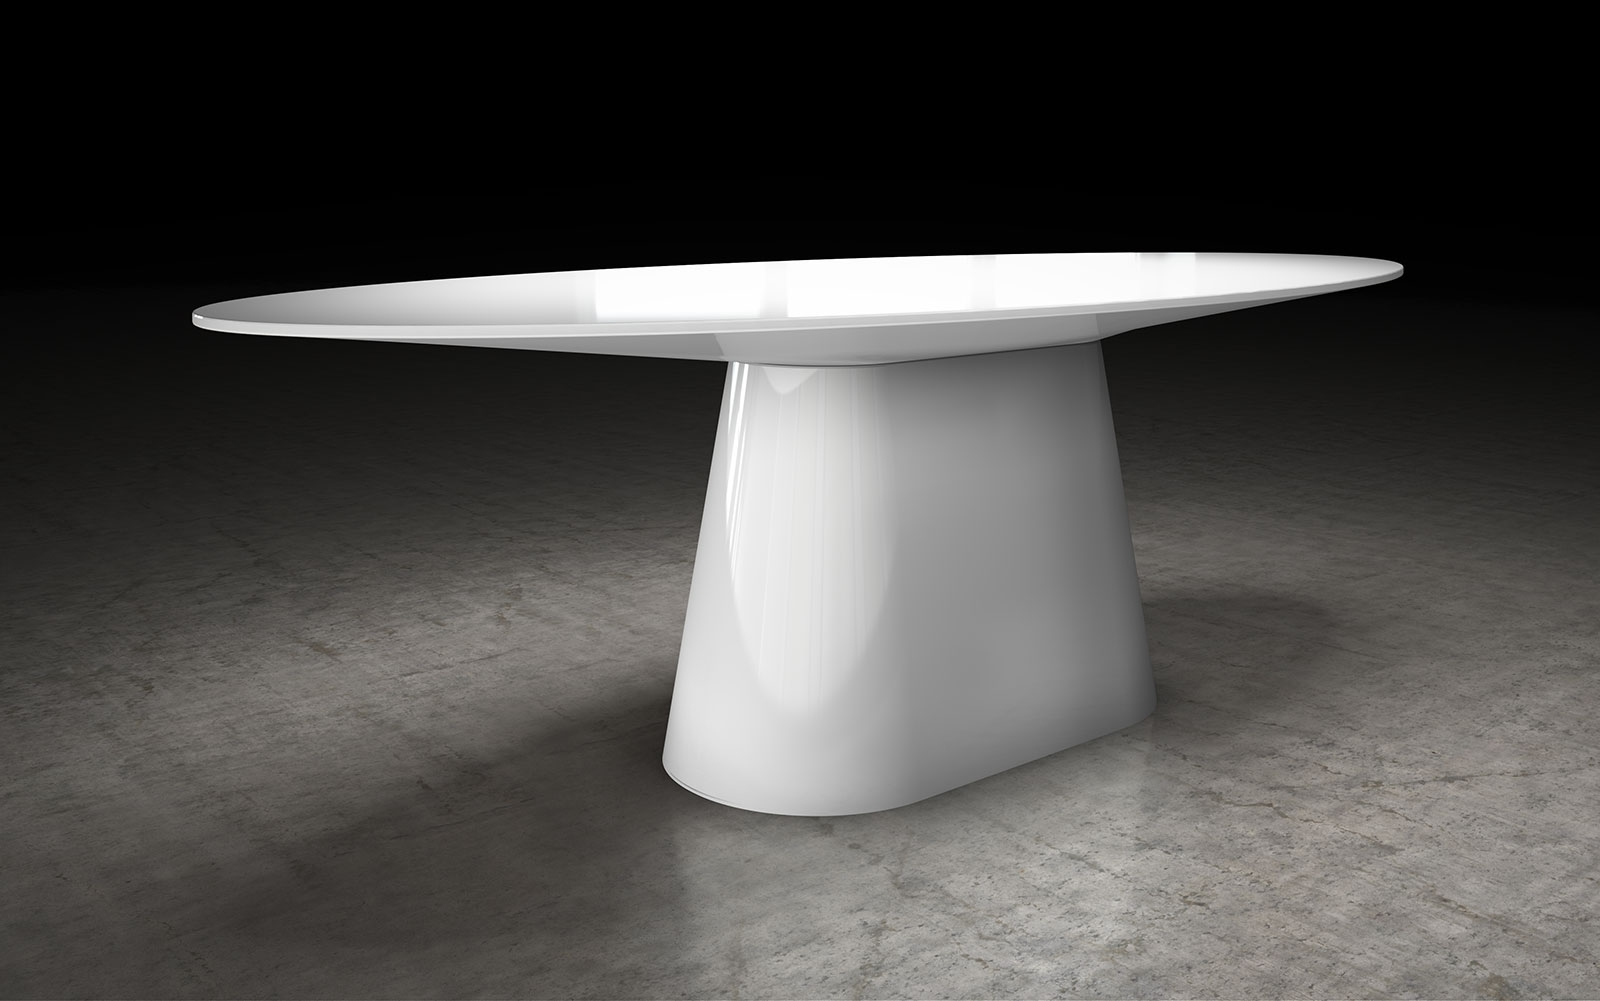 Modloft Sullivan Dining Table Md510 Official Store For Most Popular White High Gloss Oval Dining Tables (View 9 of 25)